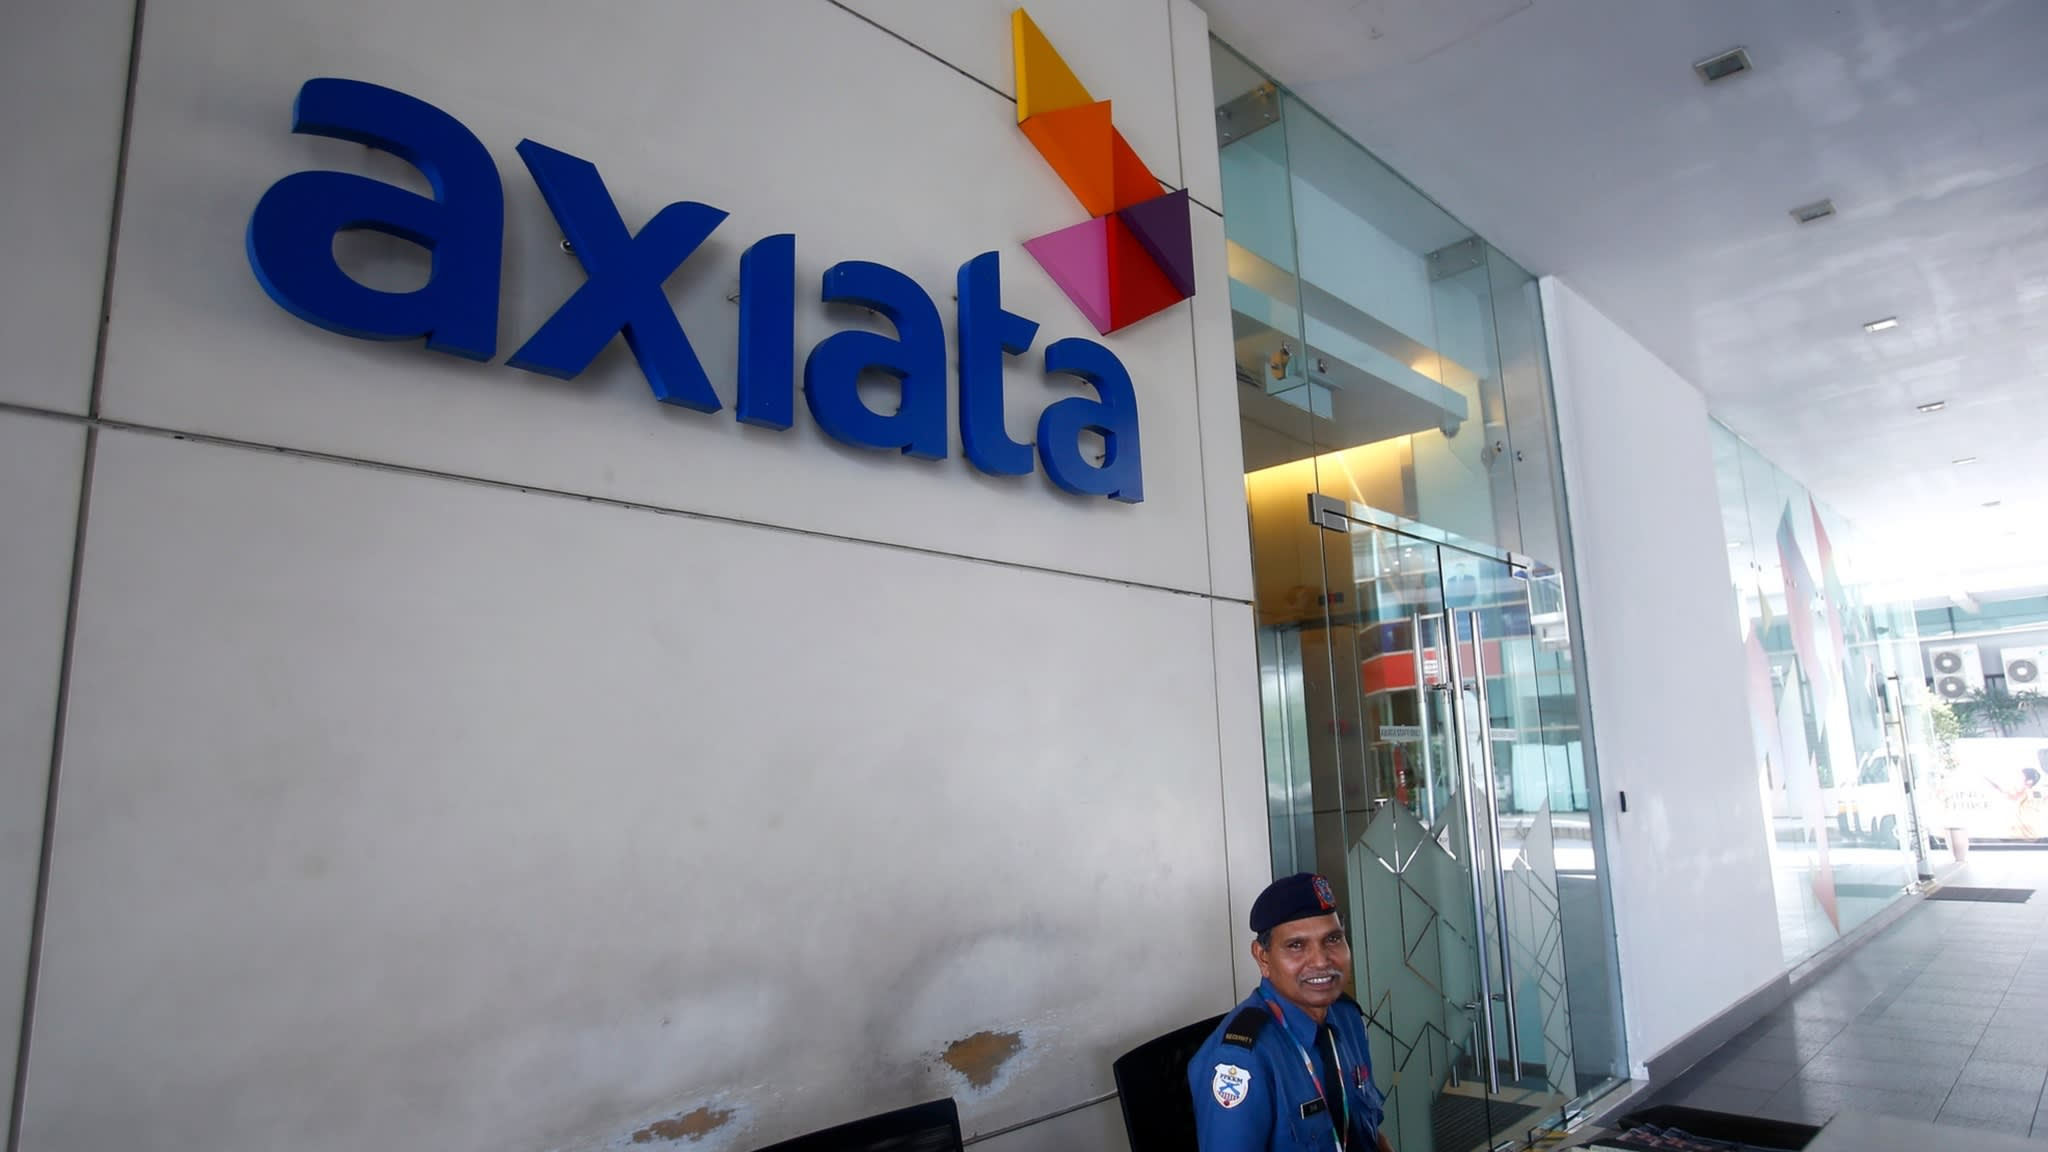 axiata-seeks-malaysia-indonesia-mergers-after-telenor-talks-ends